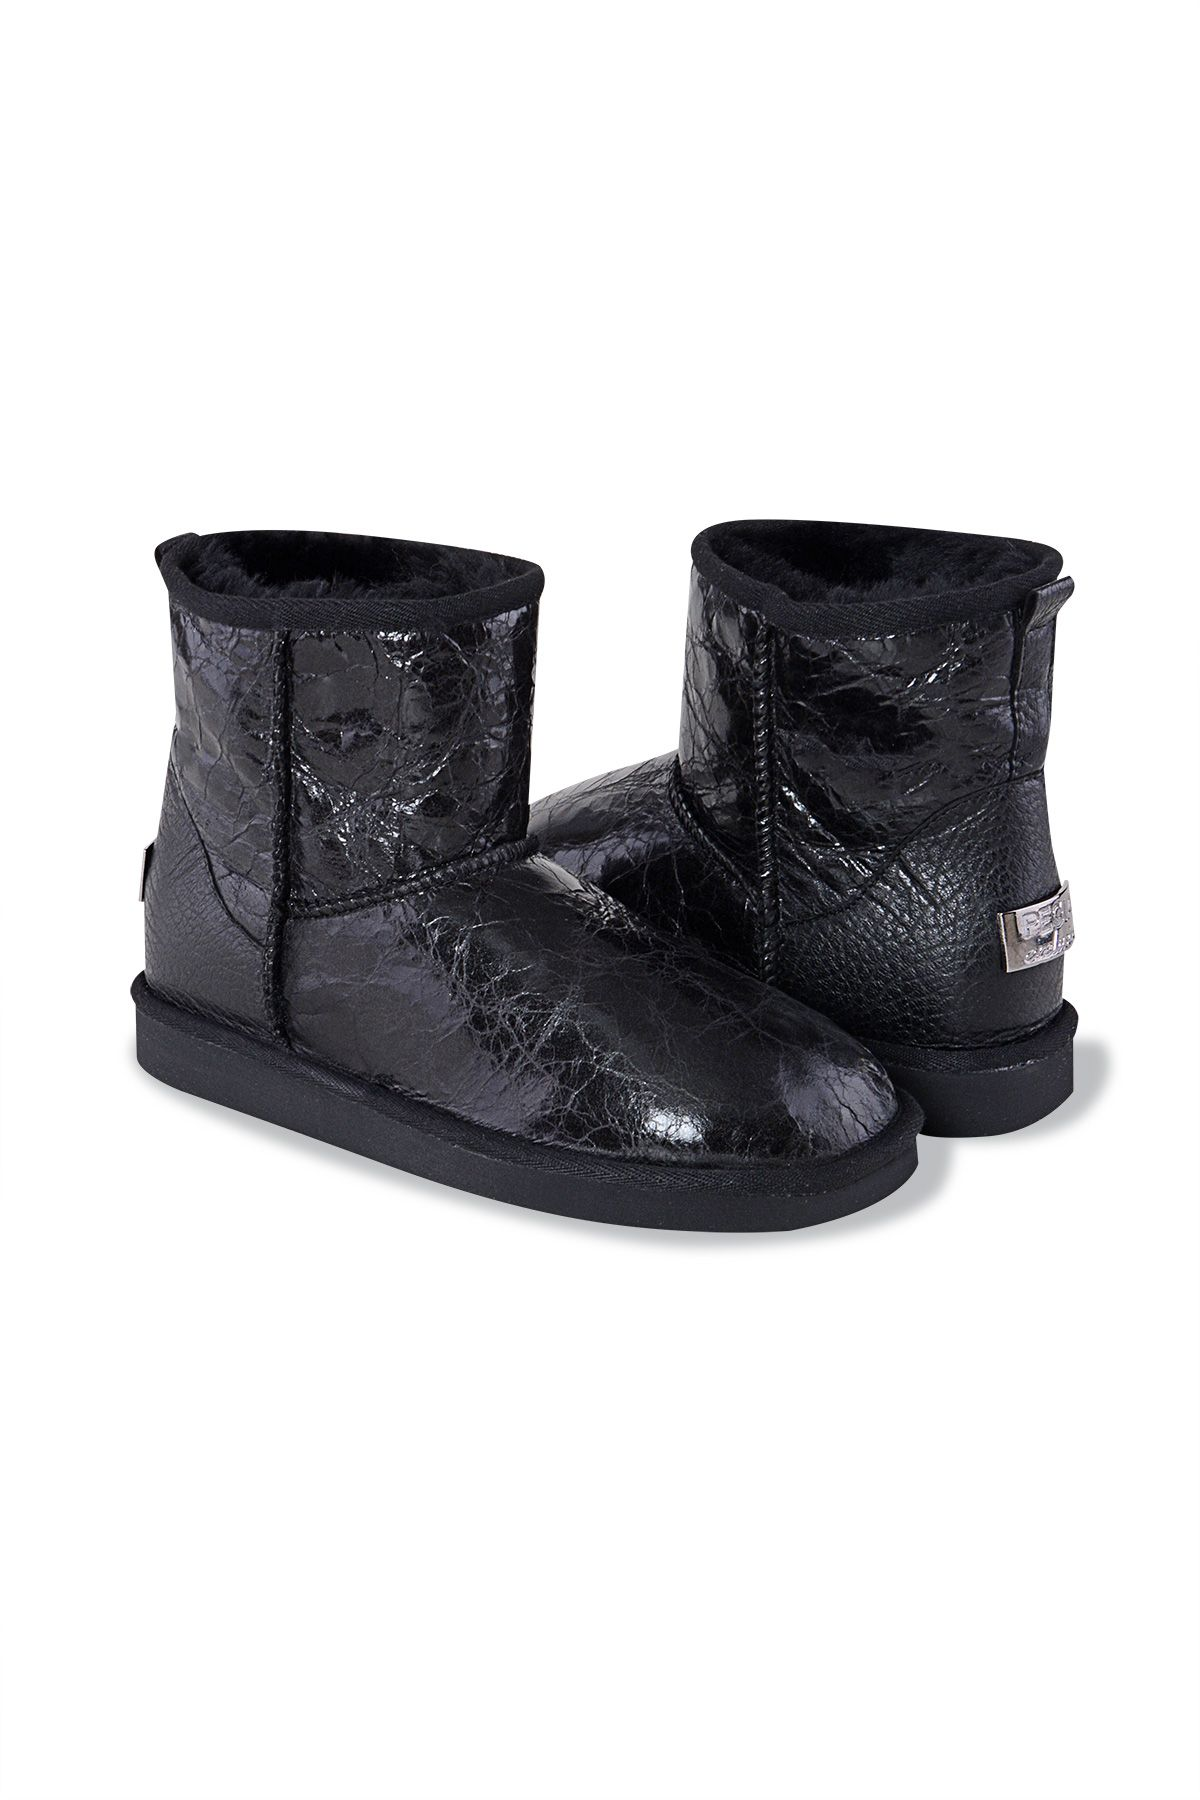 Pegia Short Women's Boots With Pattern 191044 Black